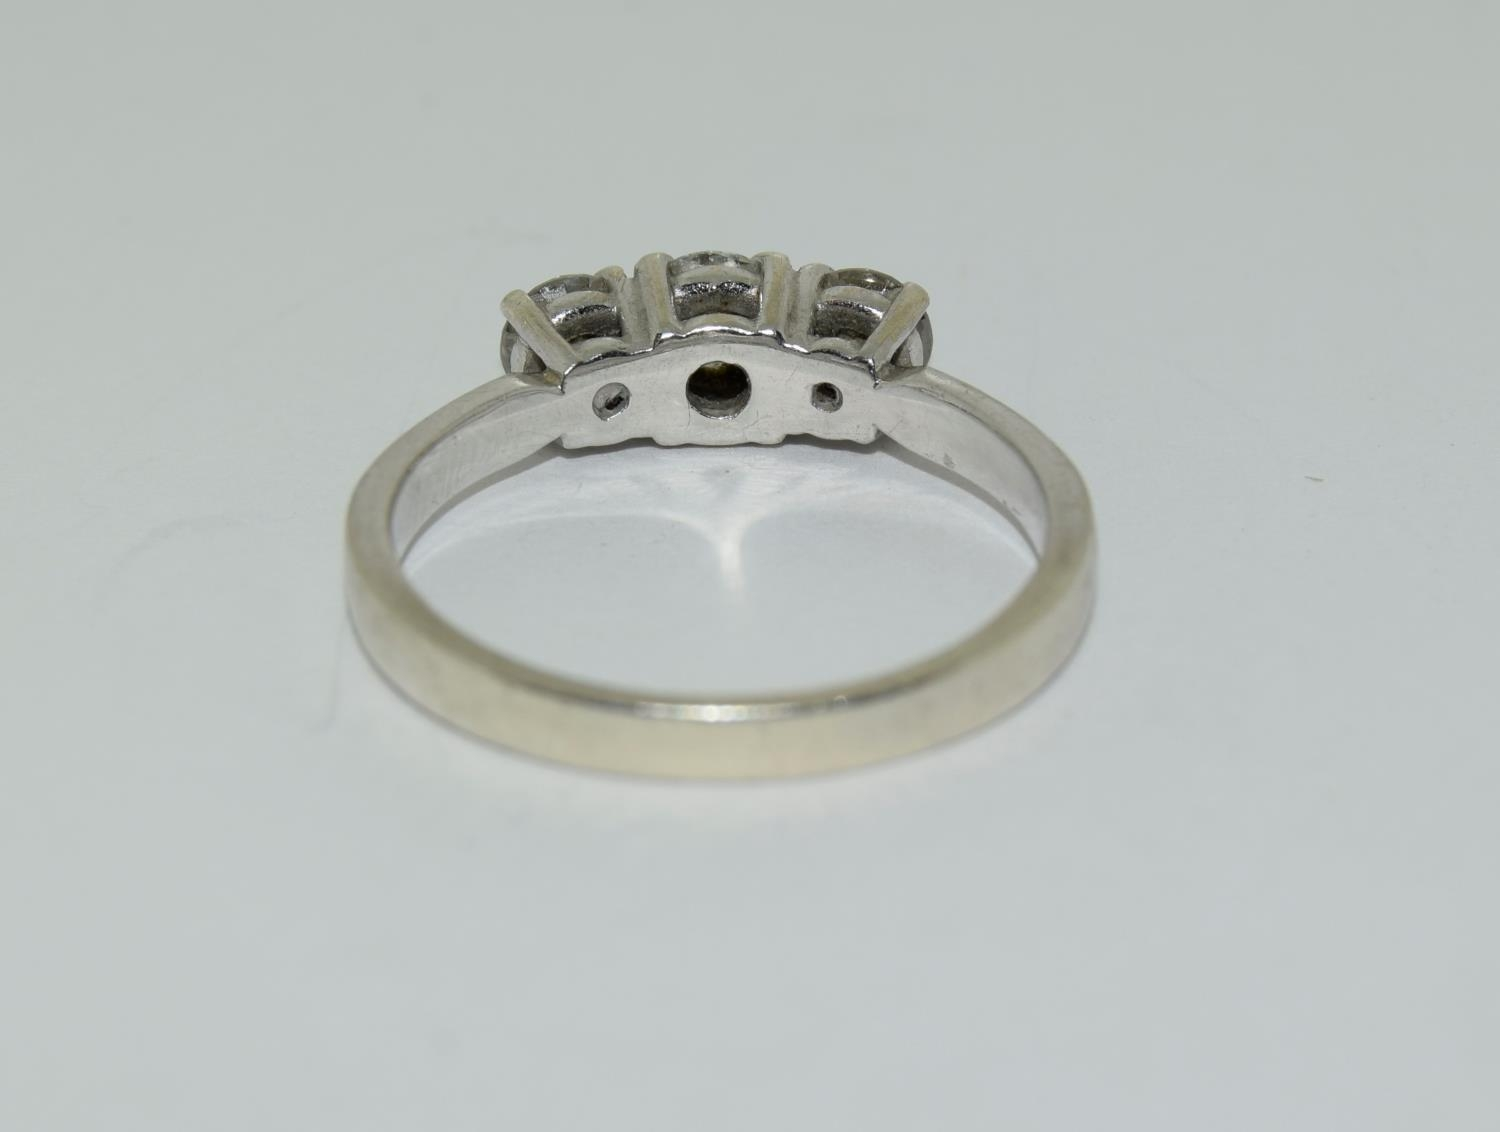 A Mosonite (dia.) three stone aprox 65 point 9ct white gold ring, Size O. - Image 3 of 6